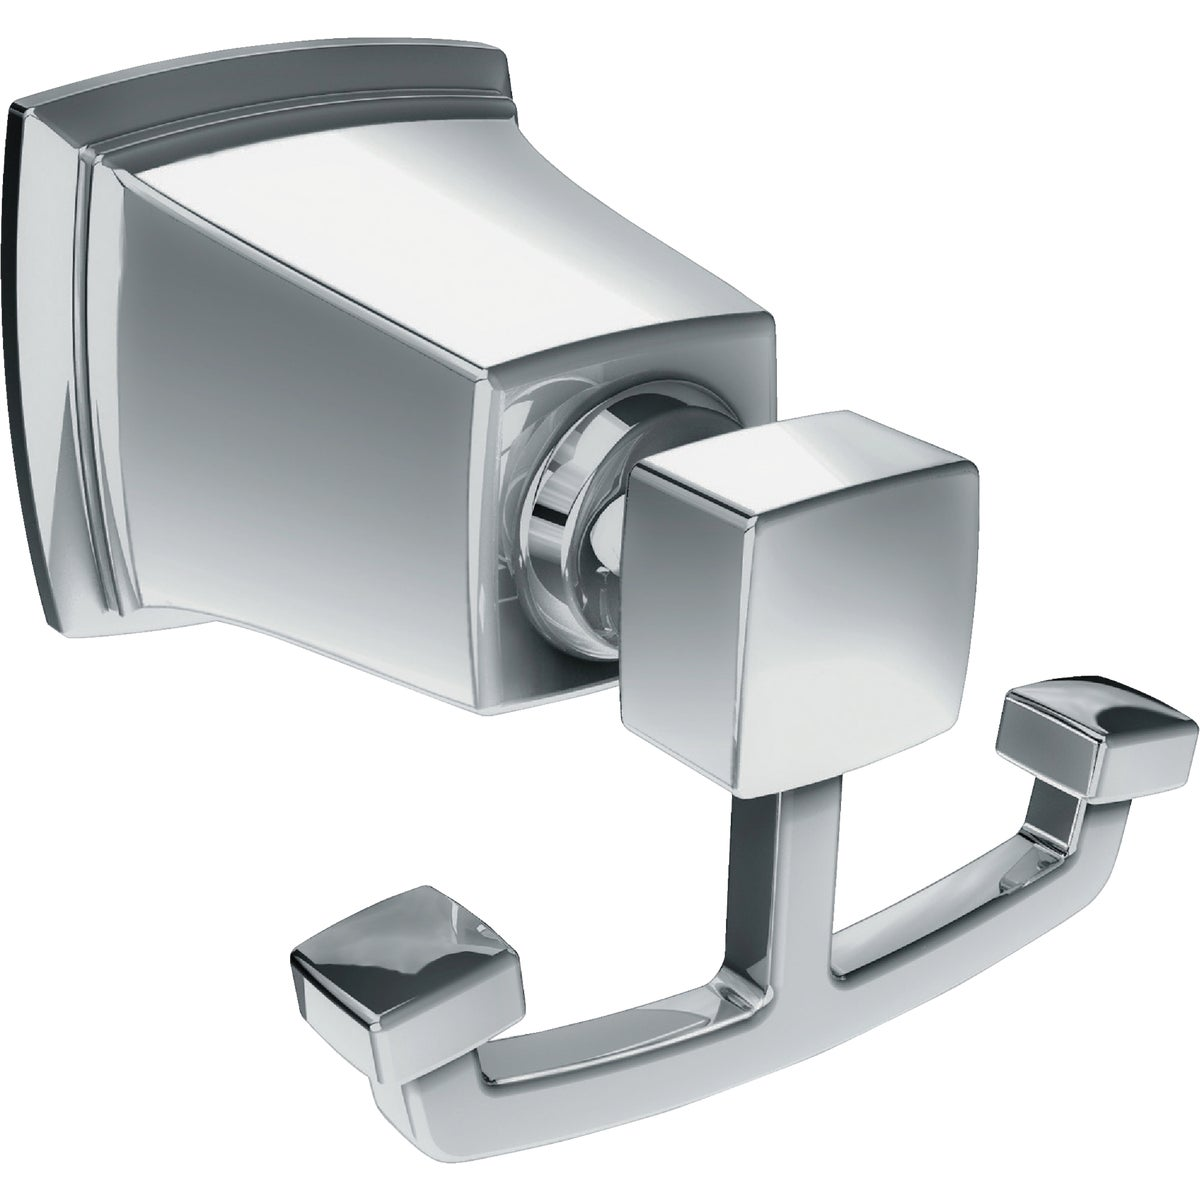 CHROME ROBE HOOK - Y3203CH by C S I Donner